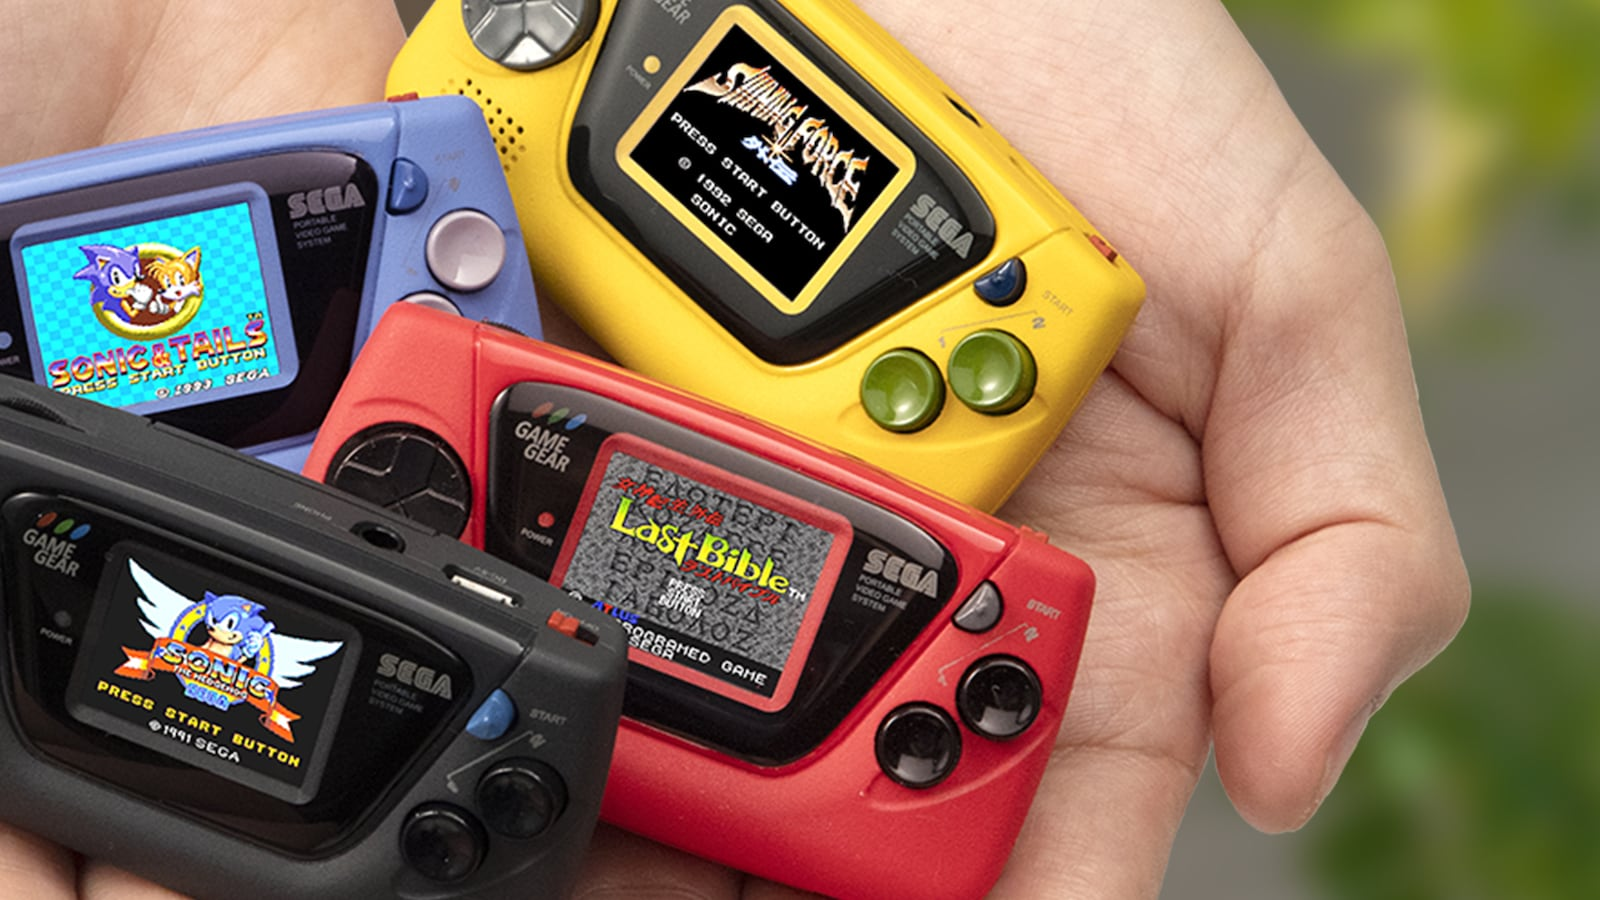 Sega Game Gear Micro gaming portable comes with 4 built-in games